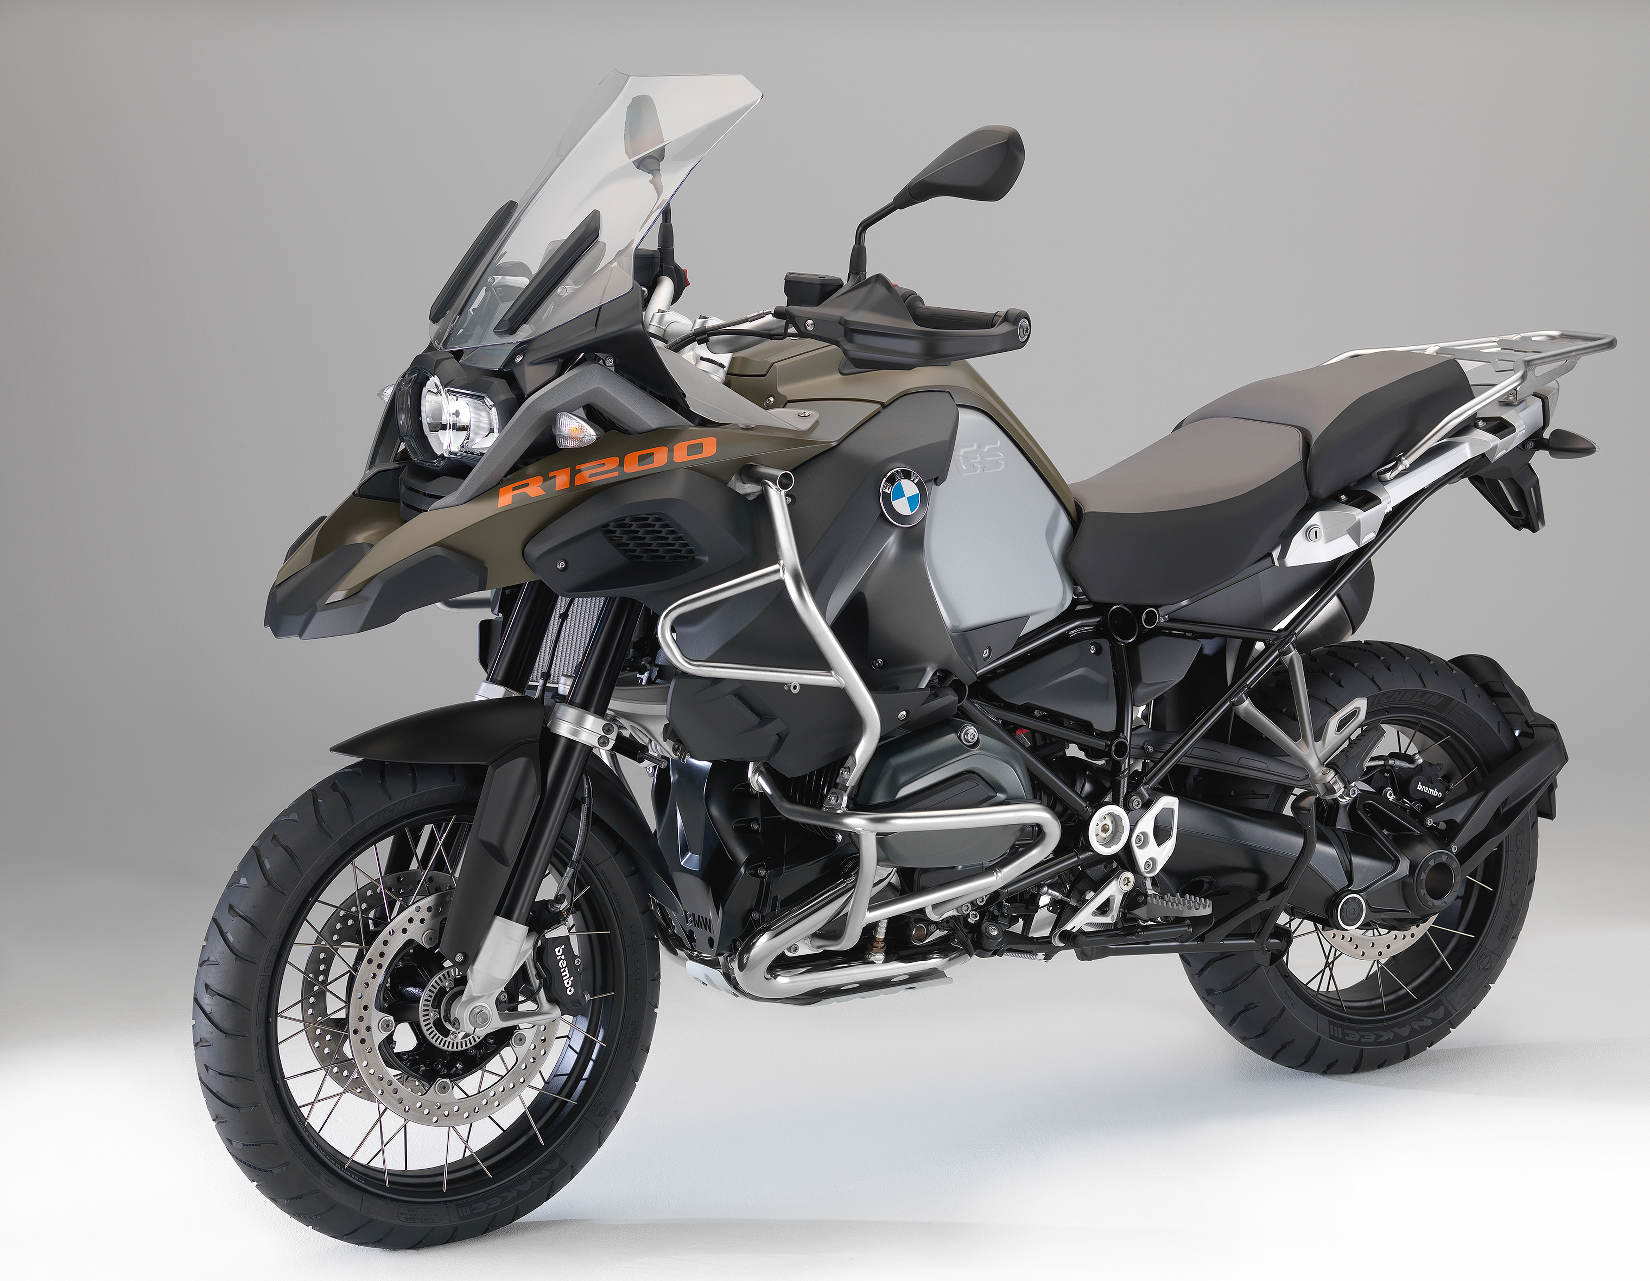 bmw announces r 1200 gs adventure the ultimate adventure tourer motorcycl. Cars Review. Best American Auto & Cars Review